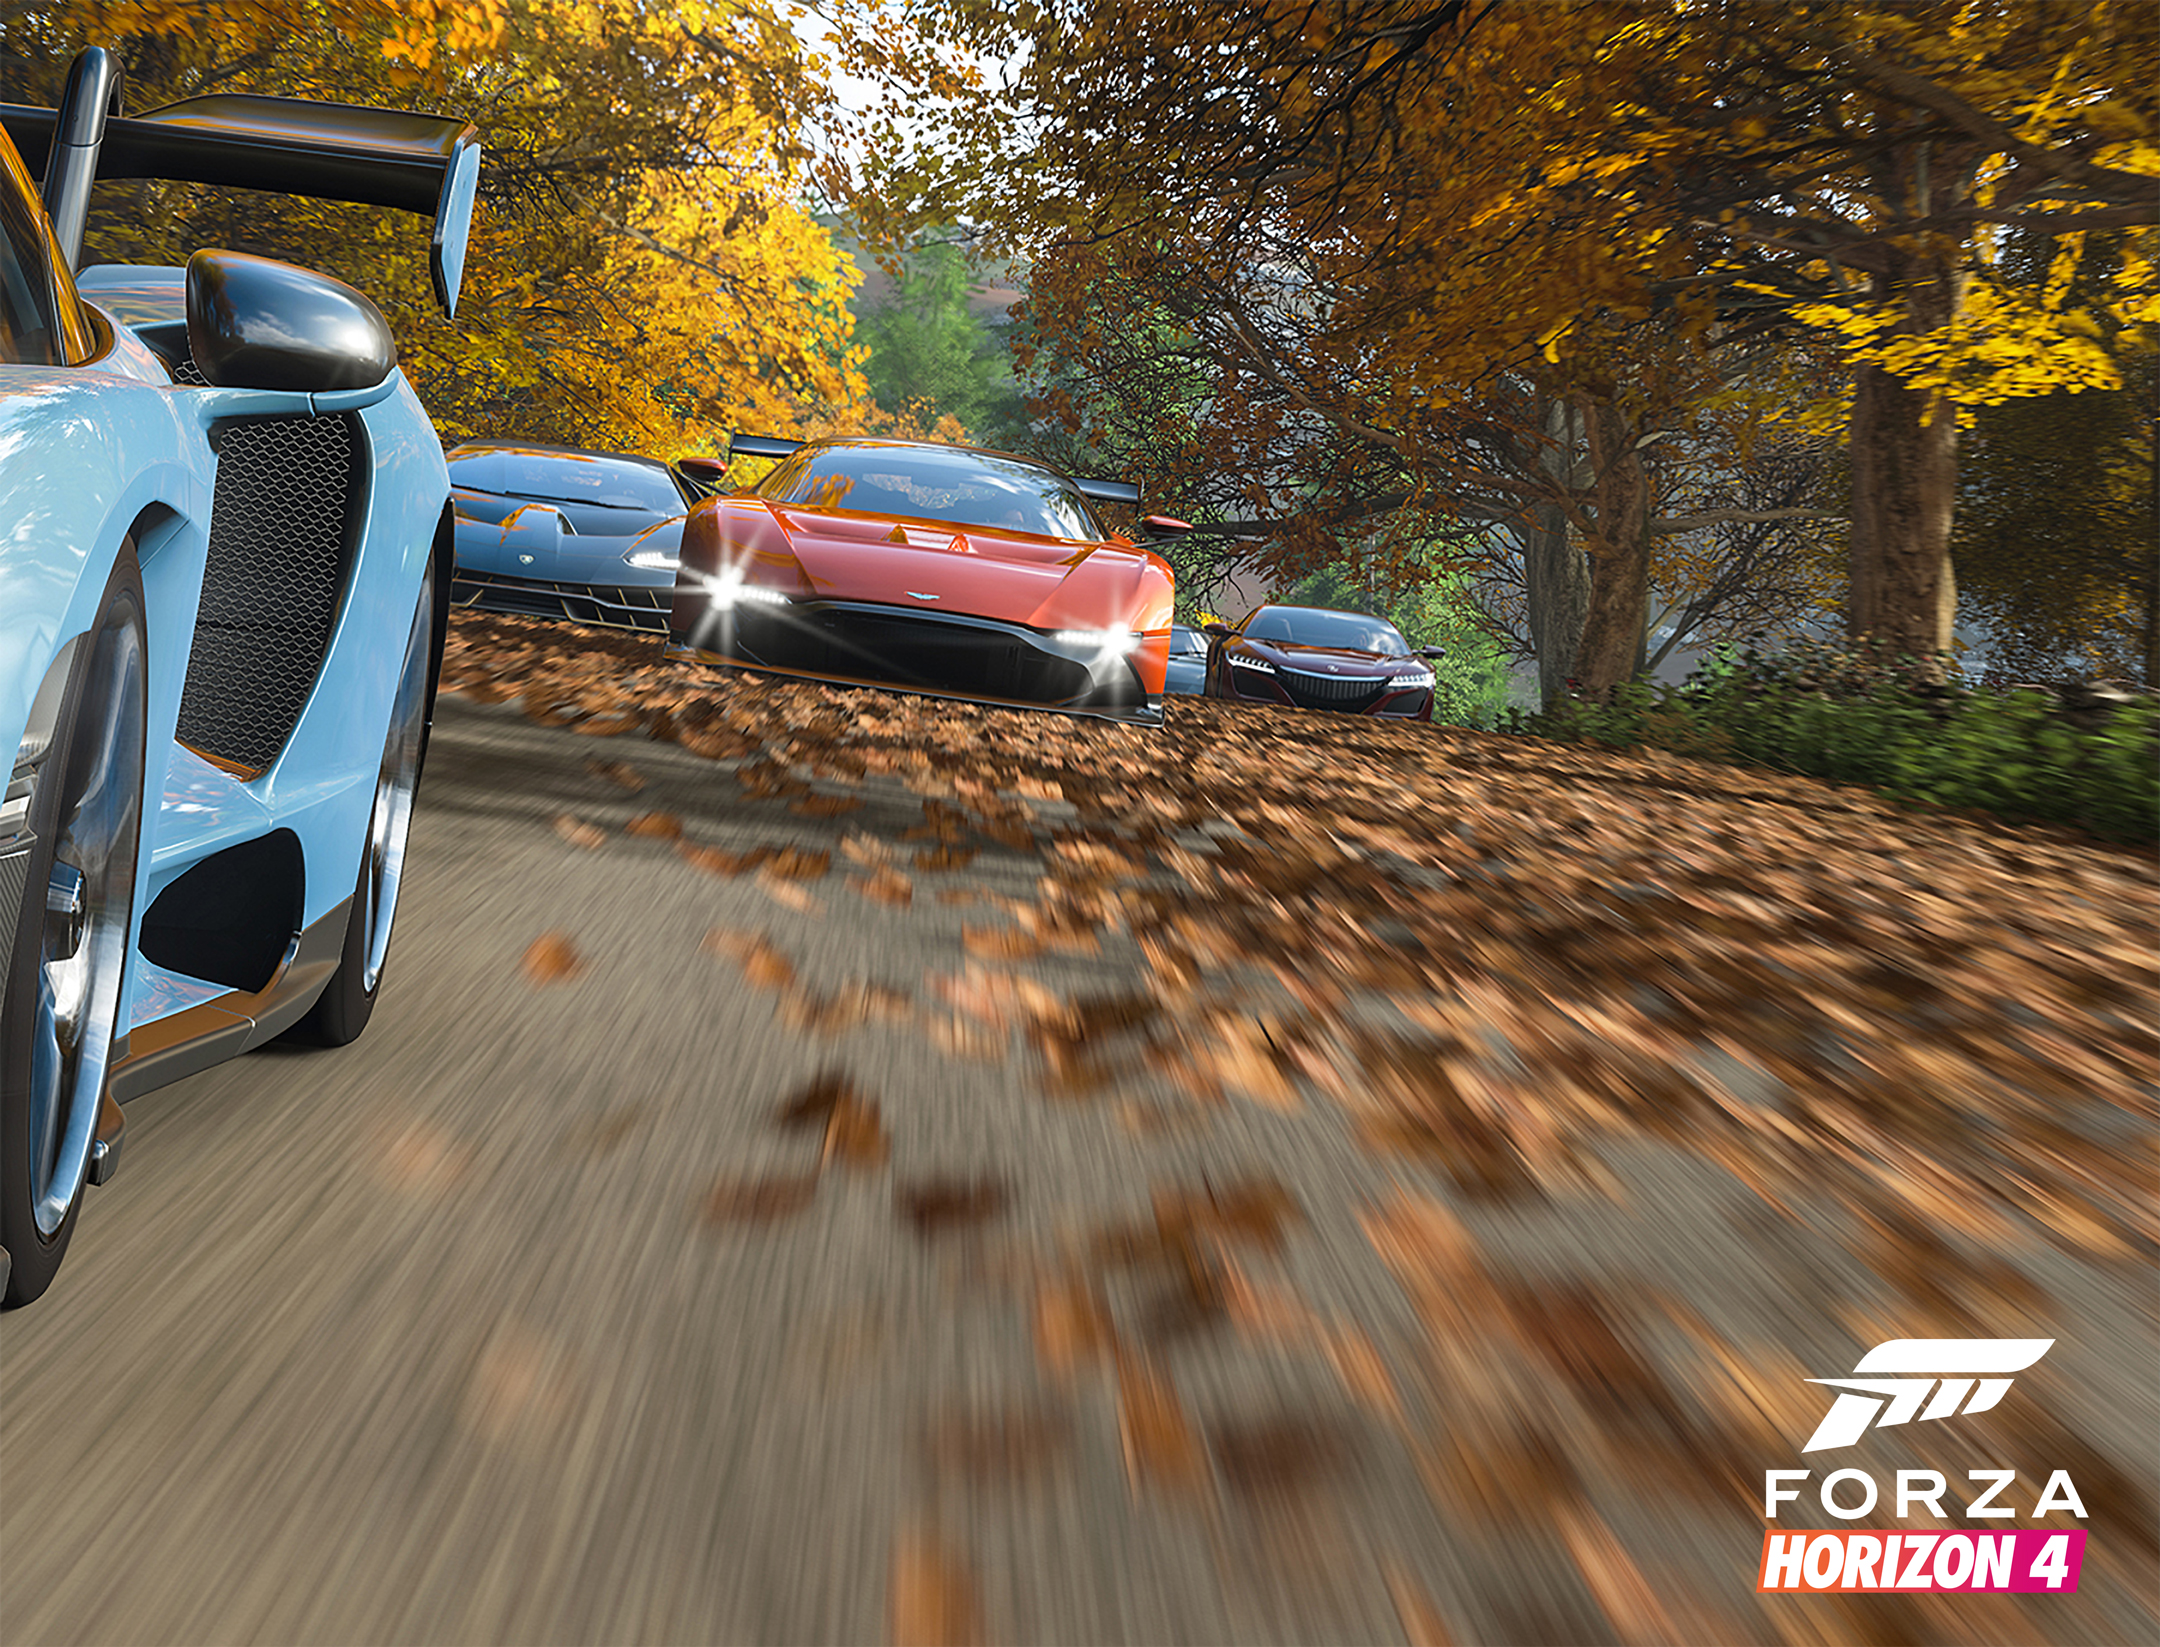 Forza Horizon 4 - 2018 - screen cars - Aston Martin Vulcan vs Lamborghini Centenario vs Acura NSX